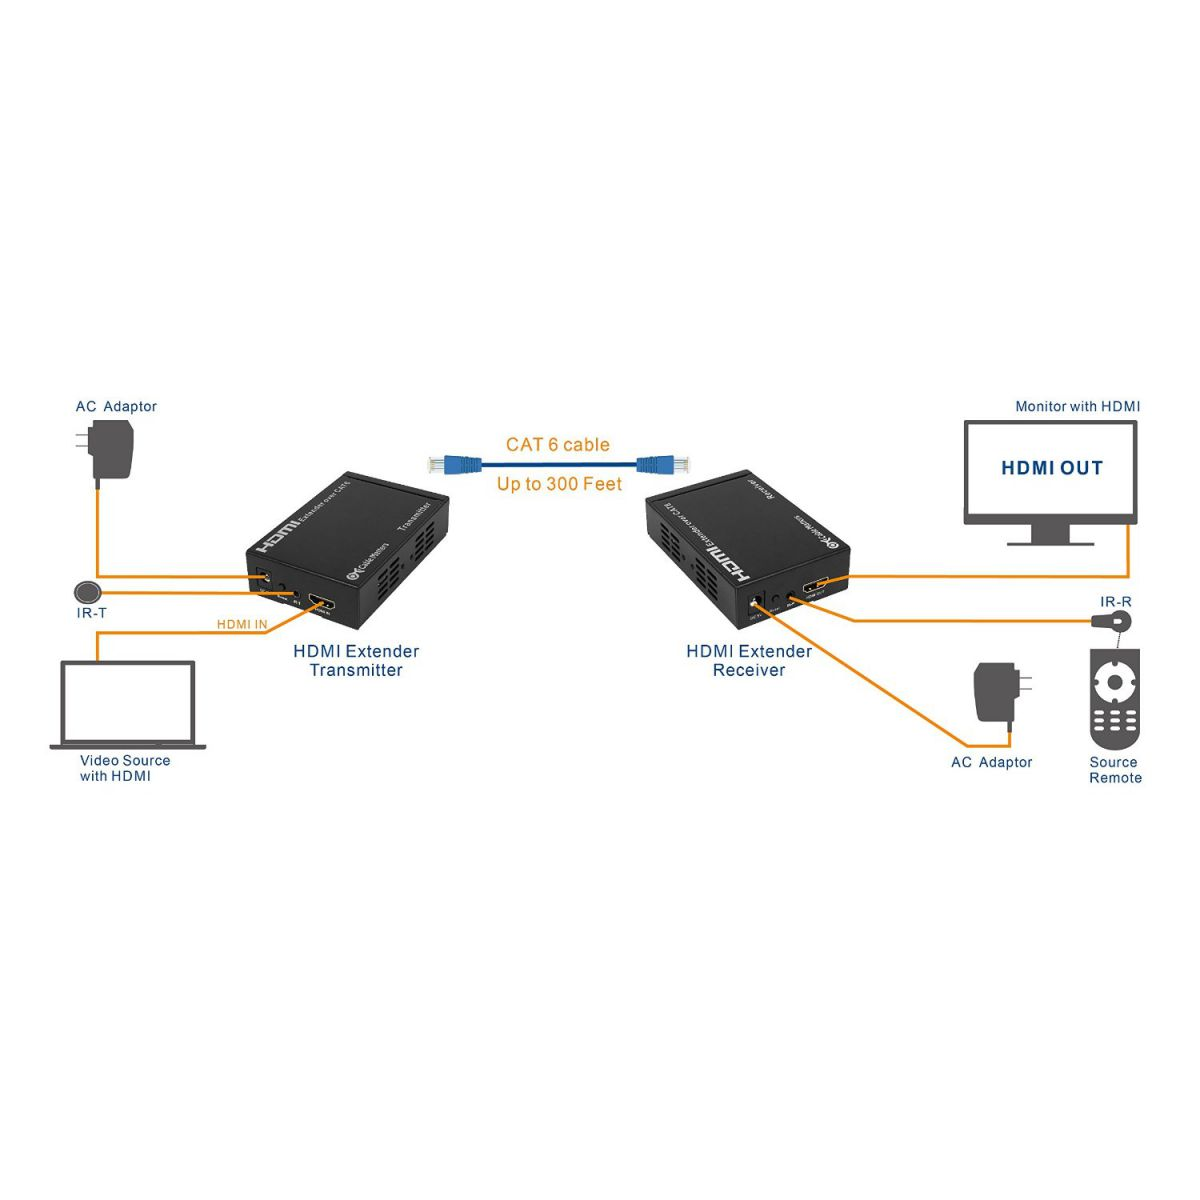 hdmi setup diagram club car precedent headlight wiring for cat 6 extender 38